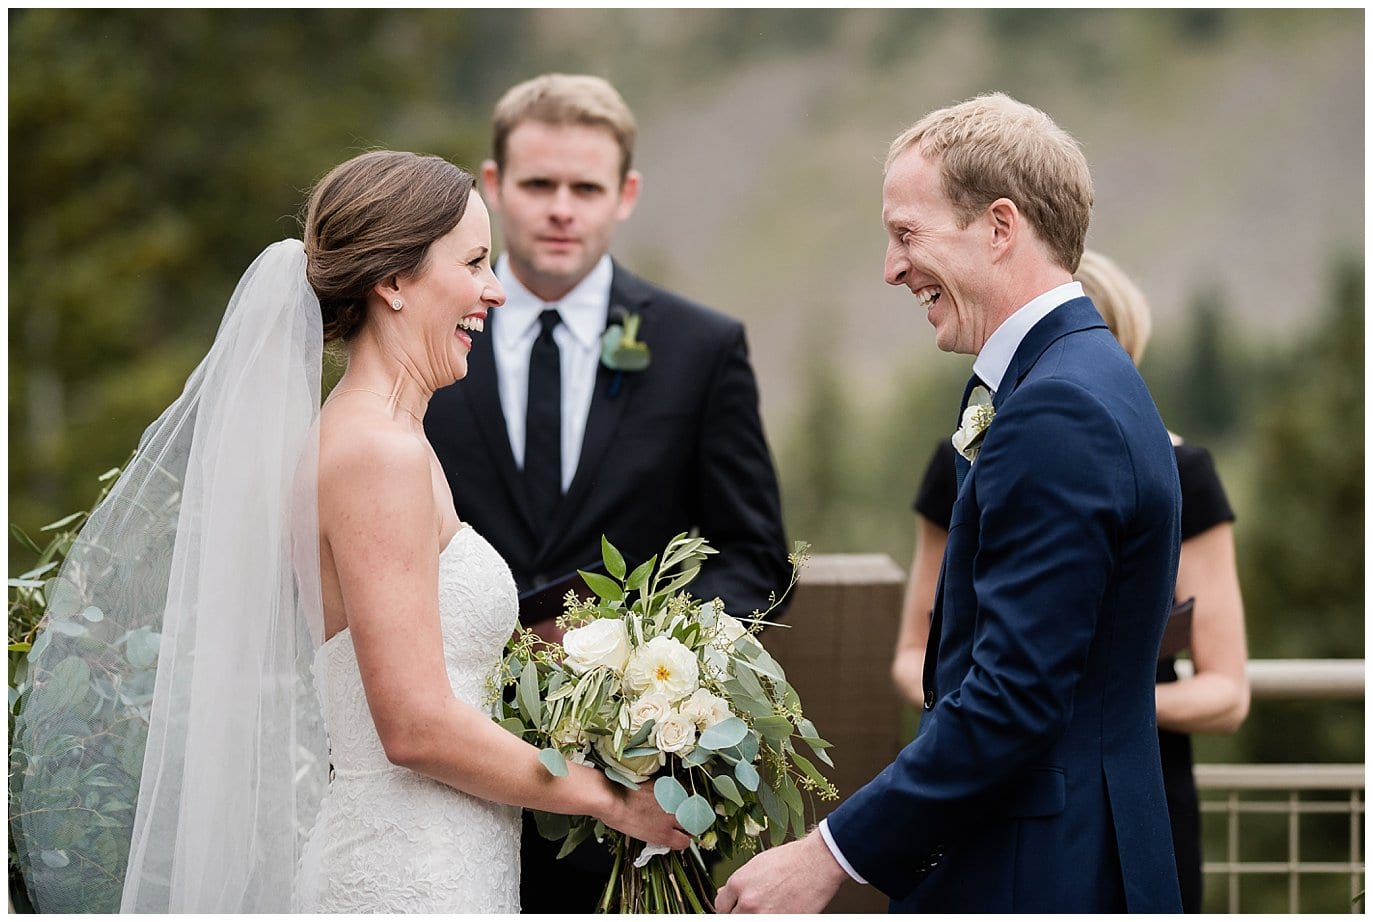 excited couple at Arapahoe Basin Black Mountain Lodge Wedding by Colorado Wedding Photographer Jennie Crate